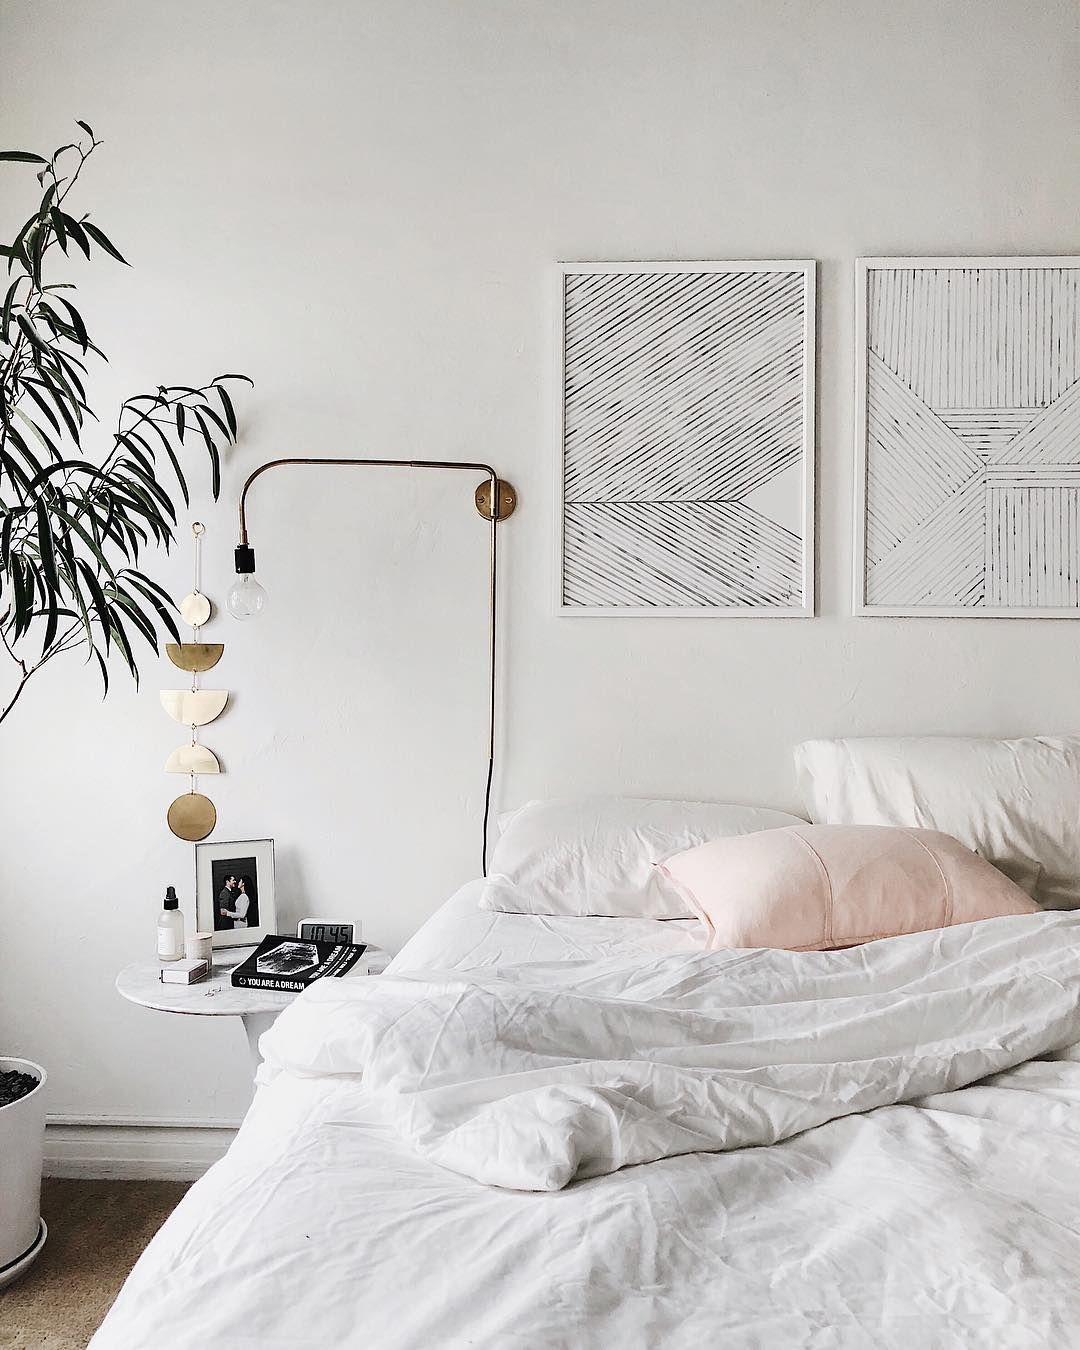 Prediction These 6 All White Bedroom Ideas Will Make Minimalists Swoon Hunker All White Bedroom Minimalist Bedroom Design Simple Bedroom